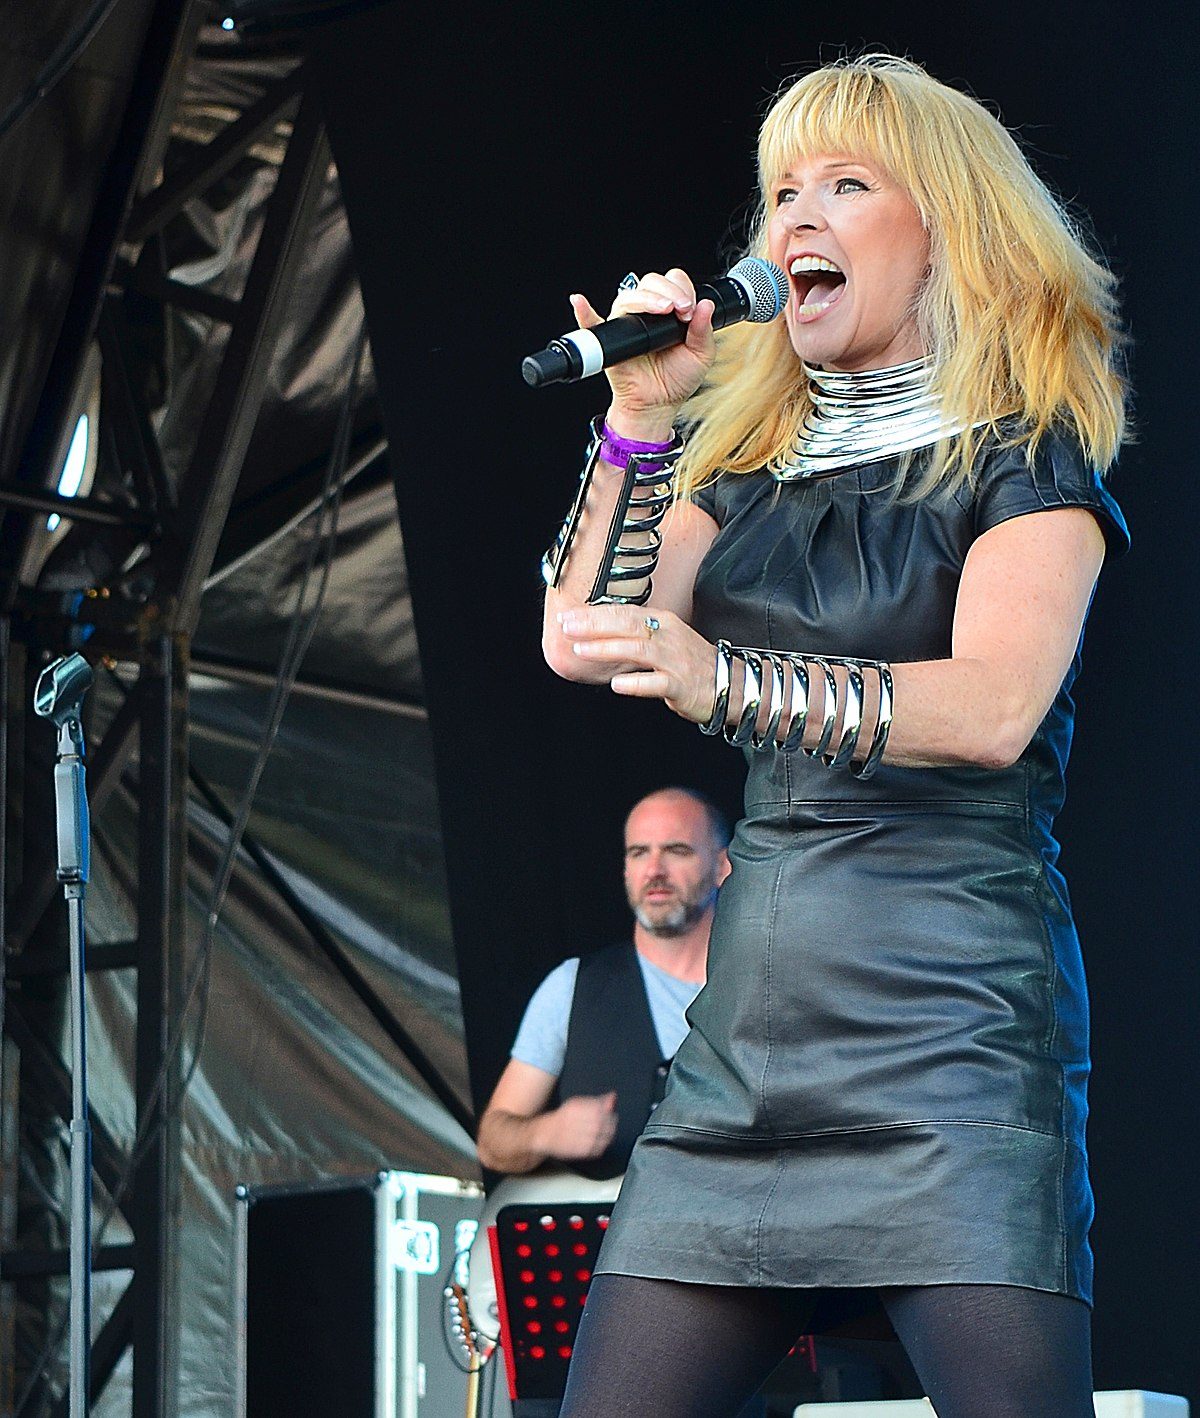 Toyah Willcox - Wikipedia